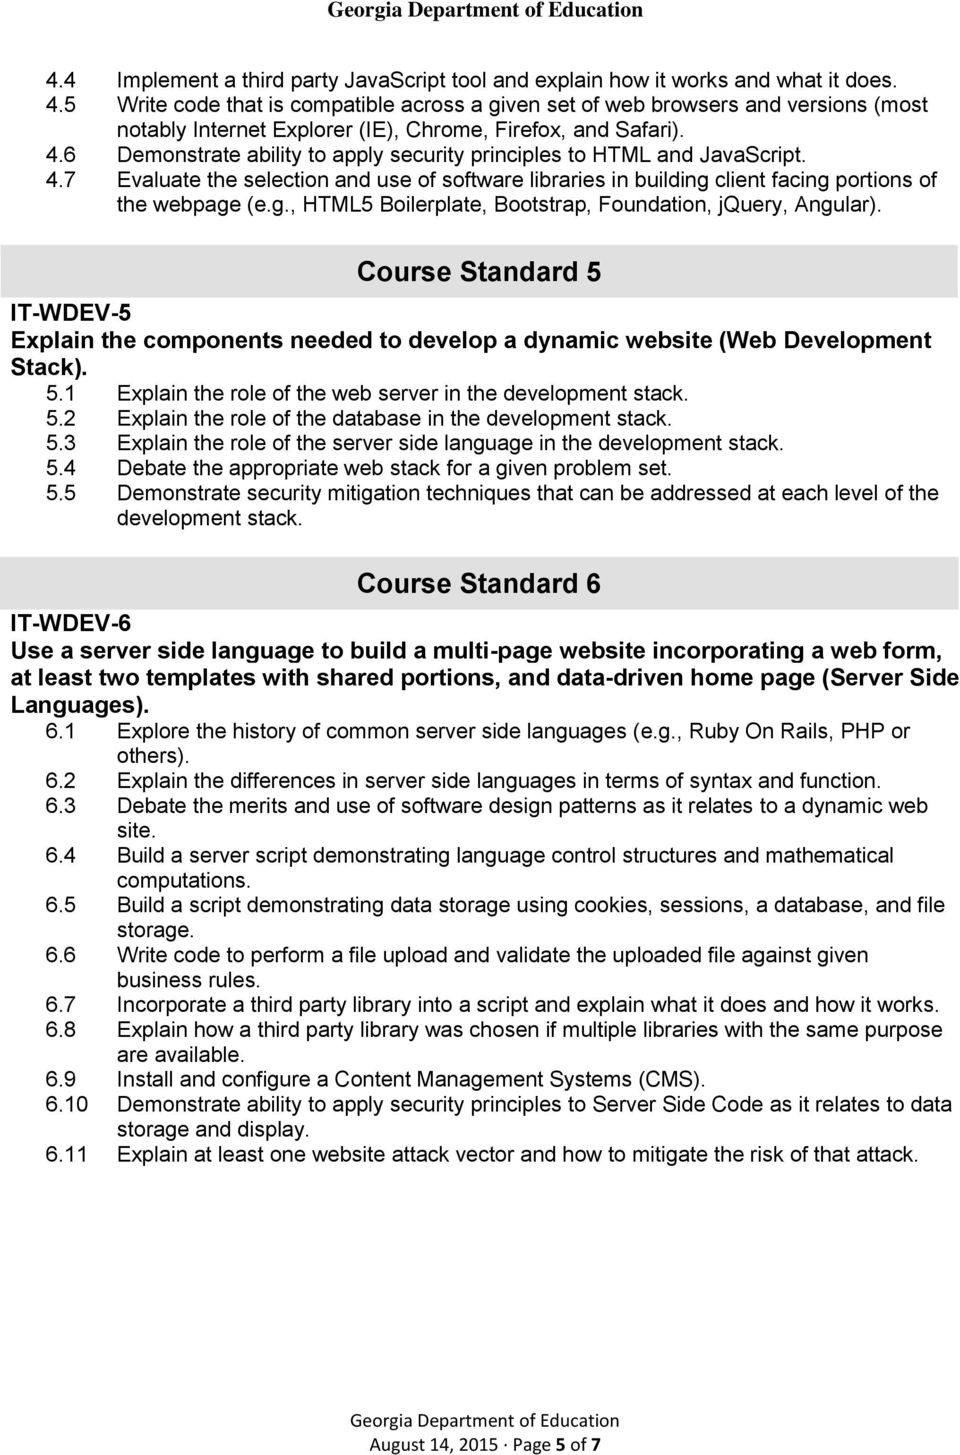 6 Demonstrate ability to apply security principles to HTML and JavaScript. 4.7 Evaluate the selection and use of software libraries in building